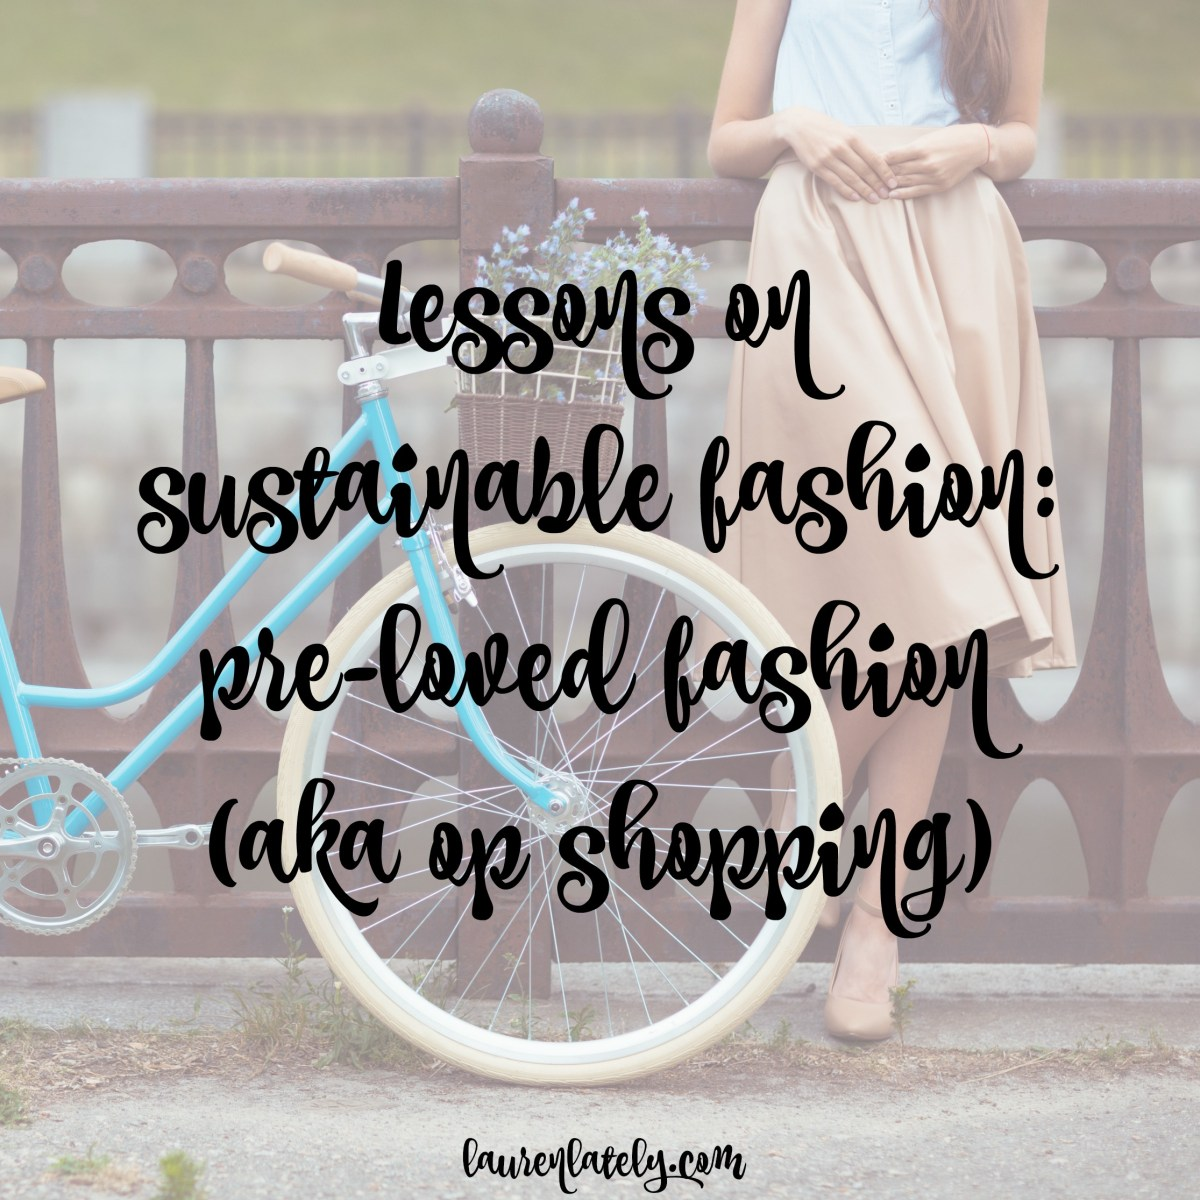 Lessons on sustainable fashion: pre-loved fashion